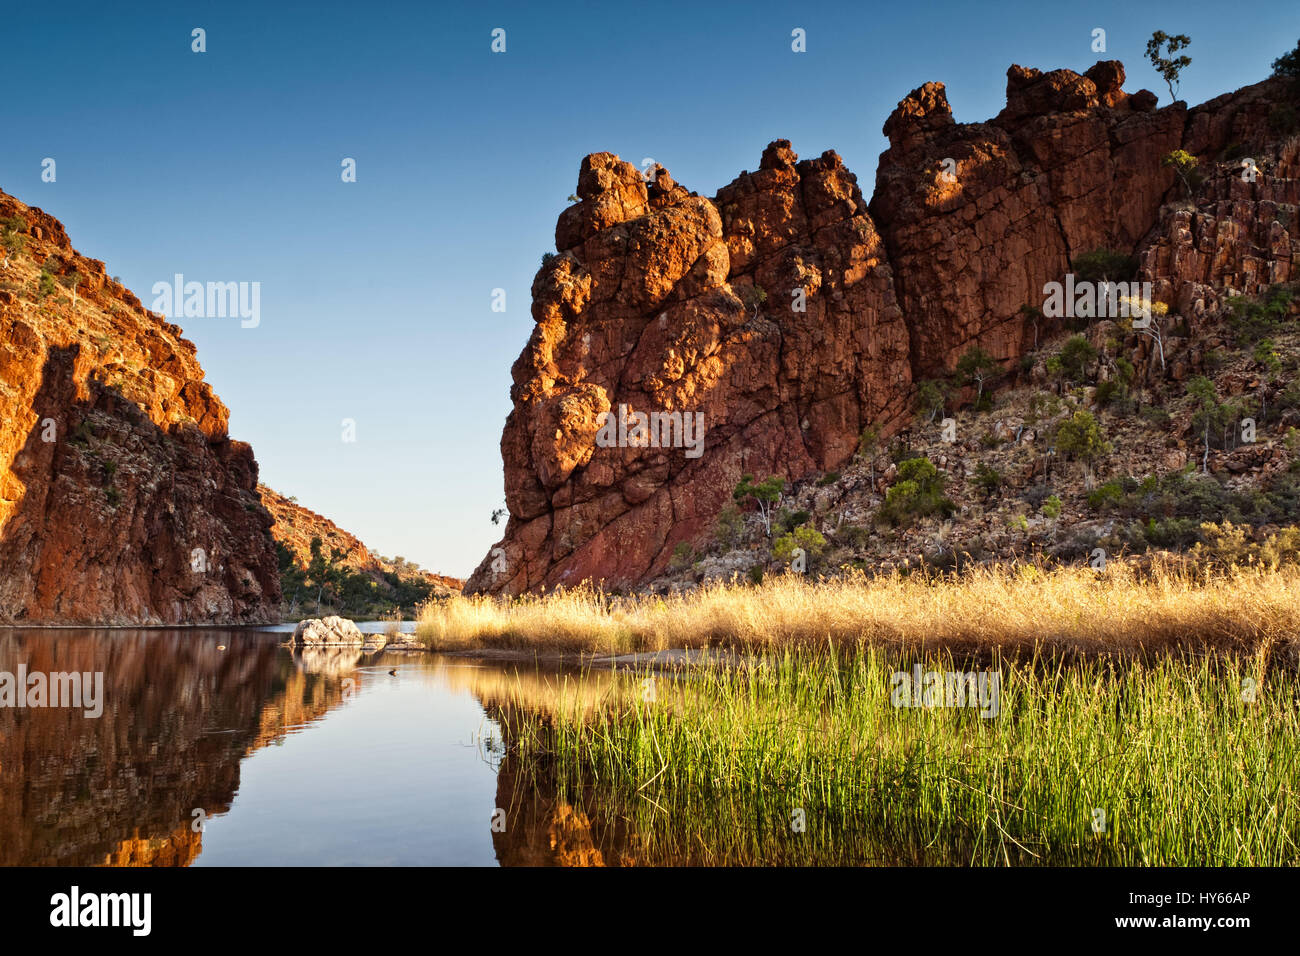 Reflections of rock formations at Glen Helen Gorge water hole in Northern Territory Central Australia - Stock Image